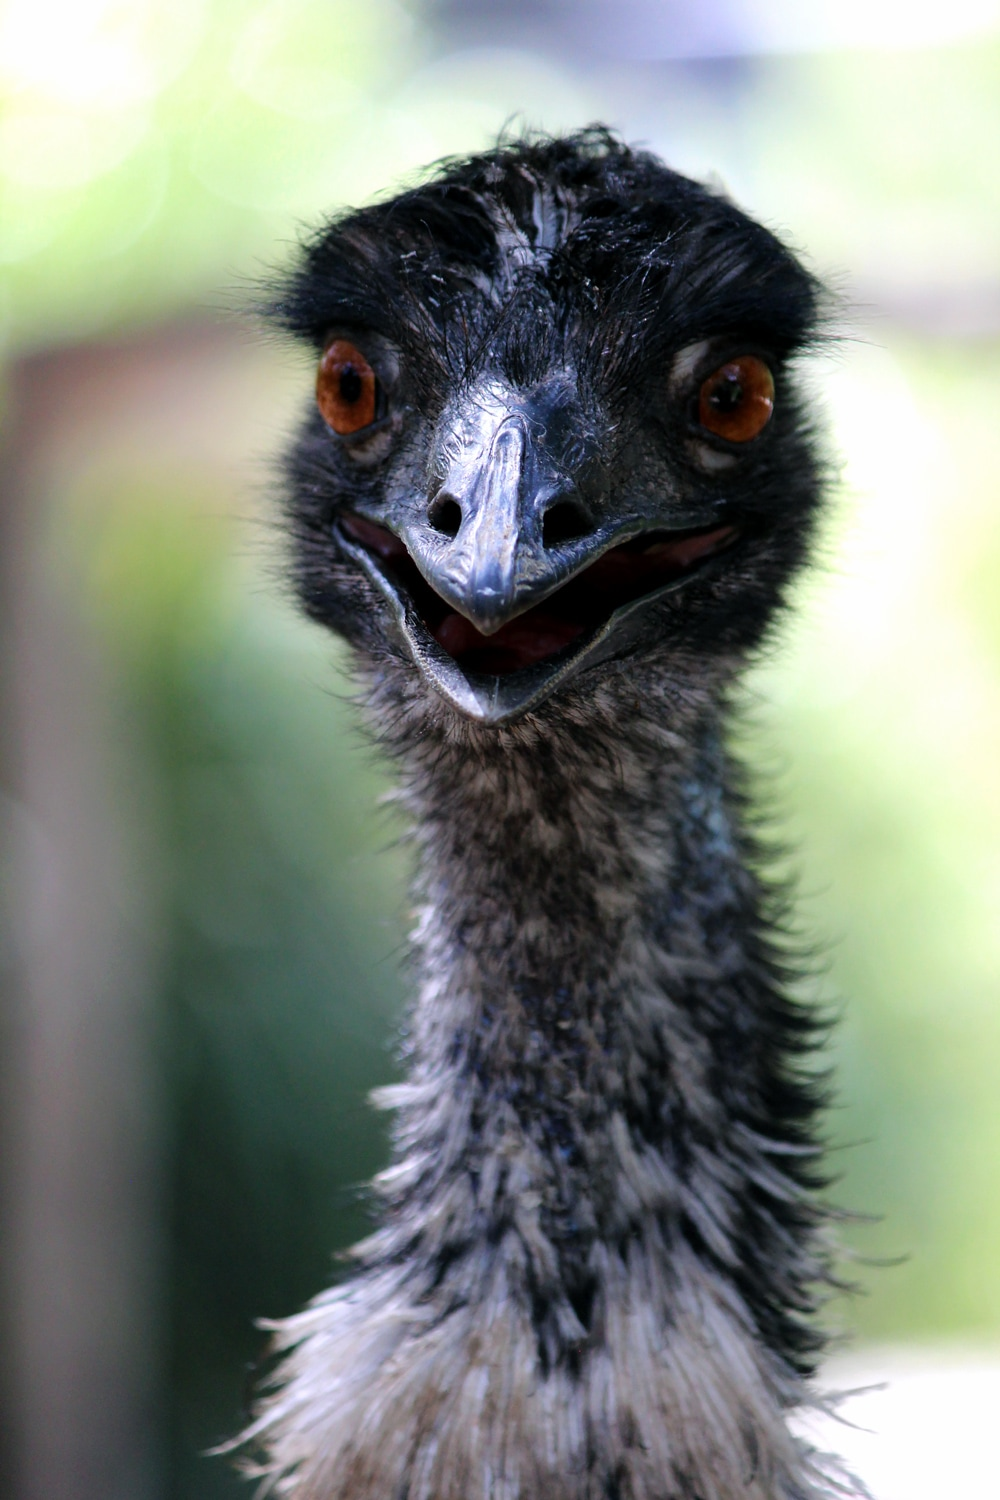 Australian wildlife - An inquisitive Emu stare at Healesville Sanctuary. (Aussie ostrich).